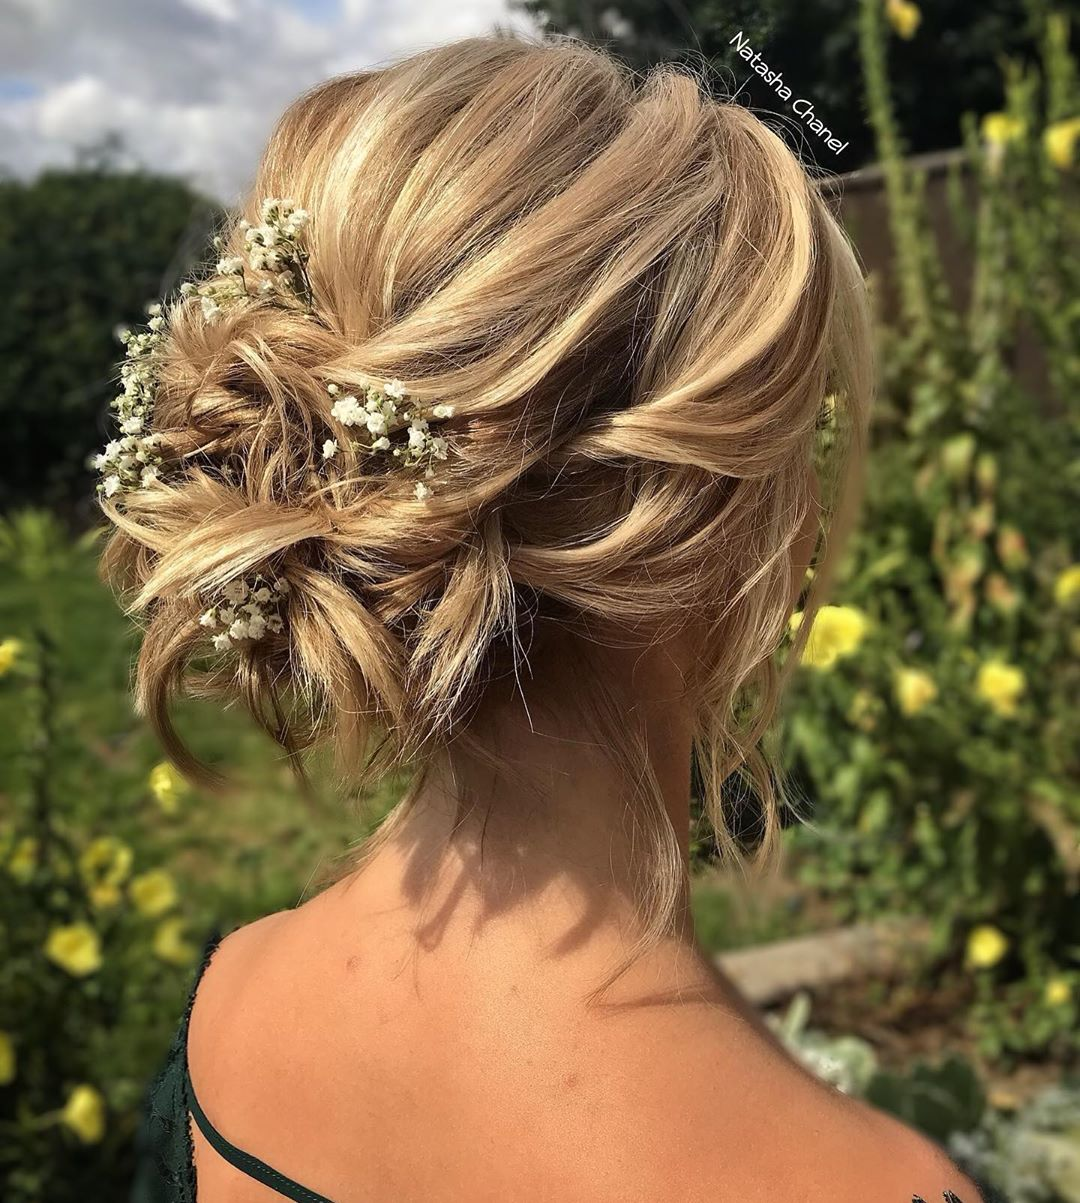 Updo with Flowers for Short Hair